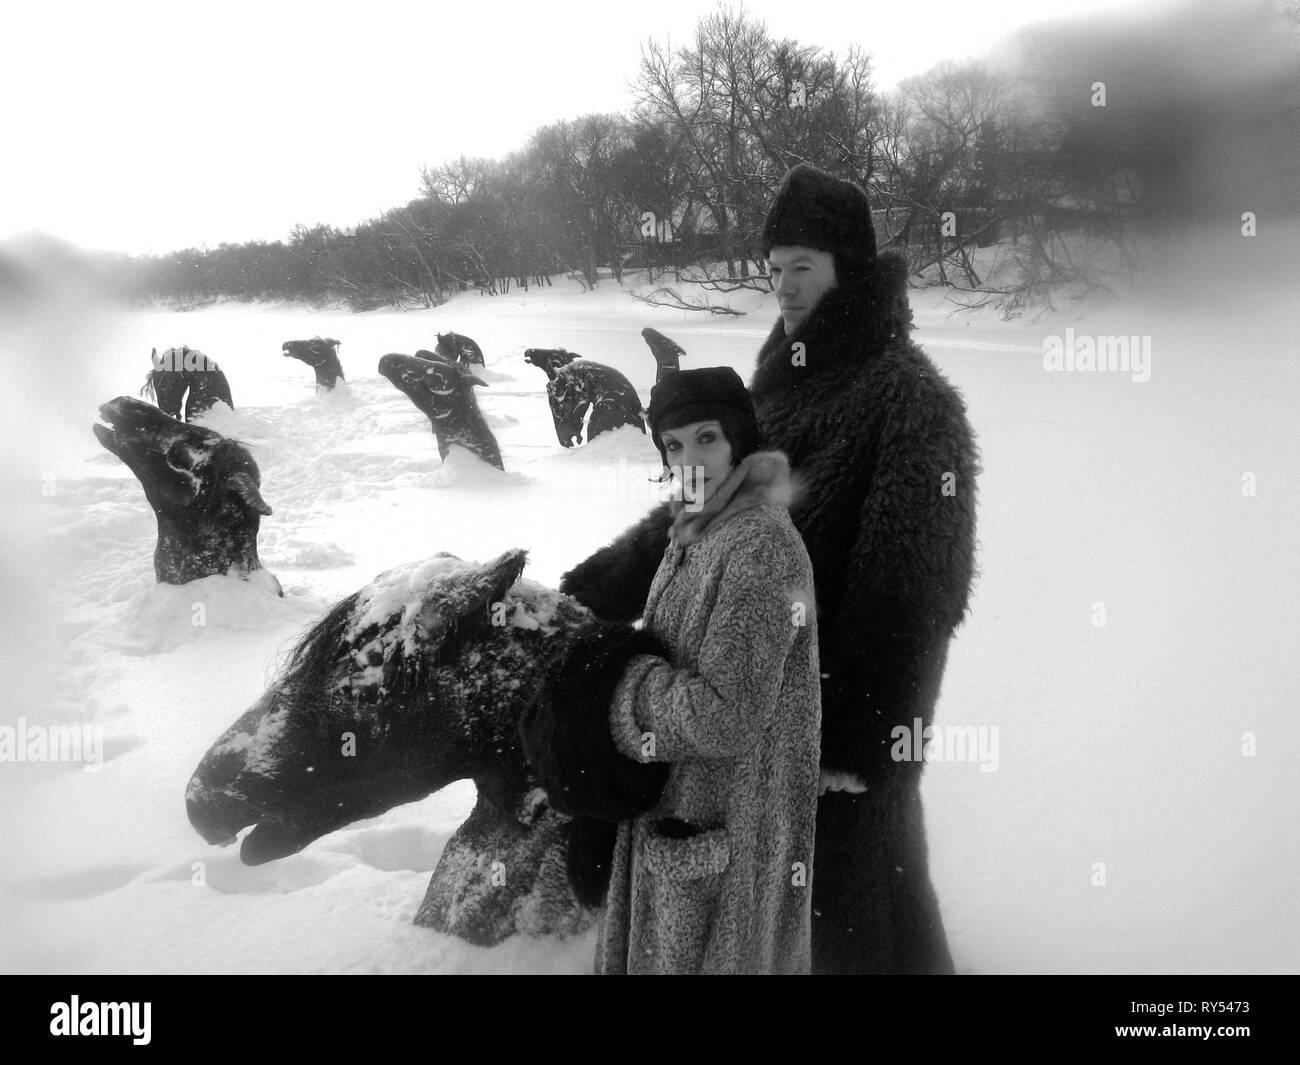 FROZEN HORSES SCENE, MY WINNIPEG, 2007 - Stock Image